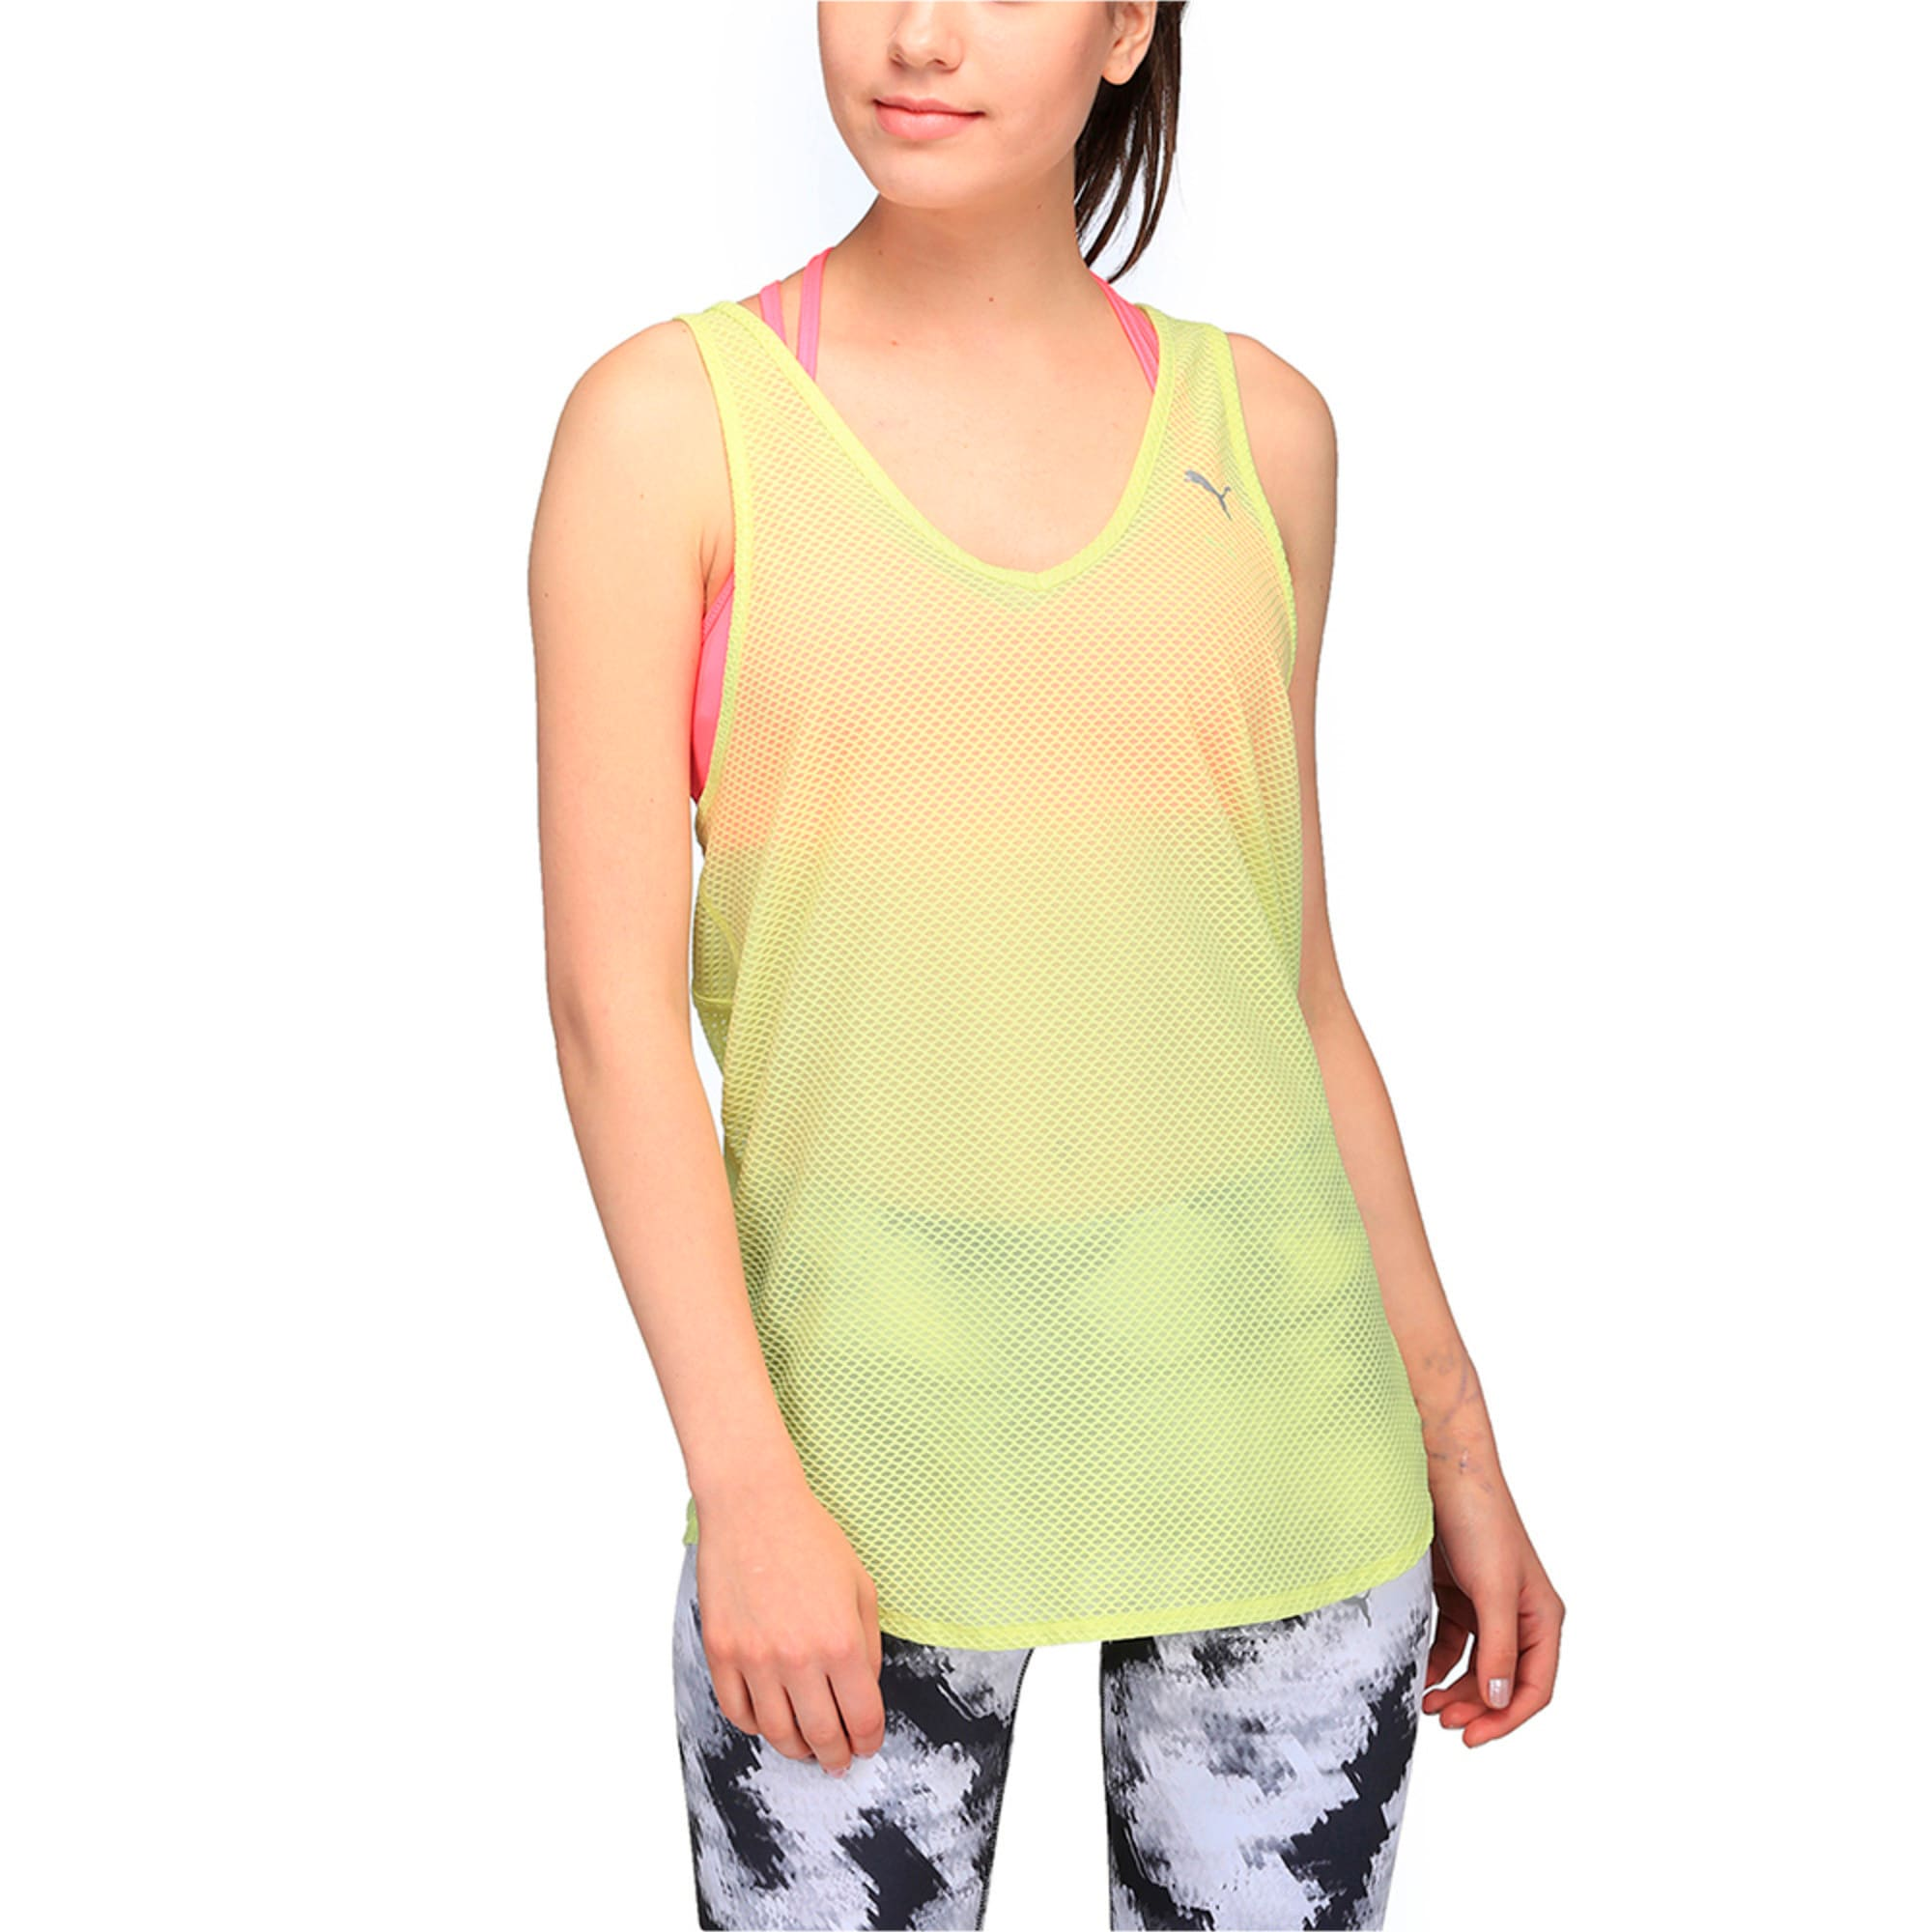 Thumbnail 1 of Active Training Women's Mesh It Up Tank Top, SOFT FLUO YELLOW, medium-IND